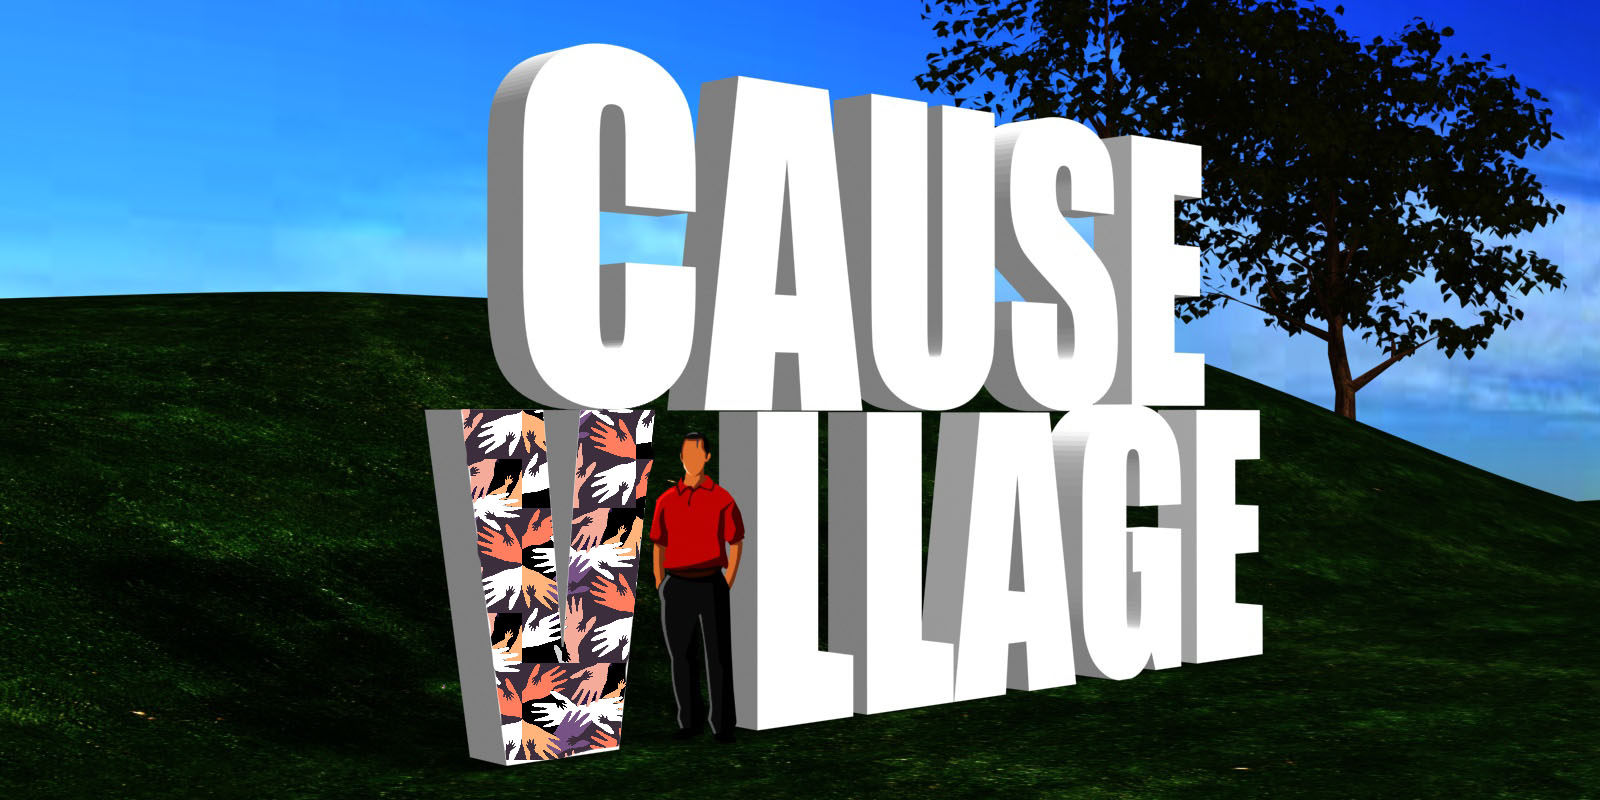 Candice Lee Smith_CauseVillage_Sign2_Fam